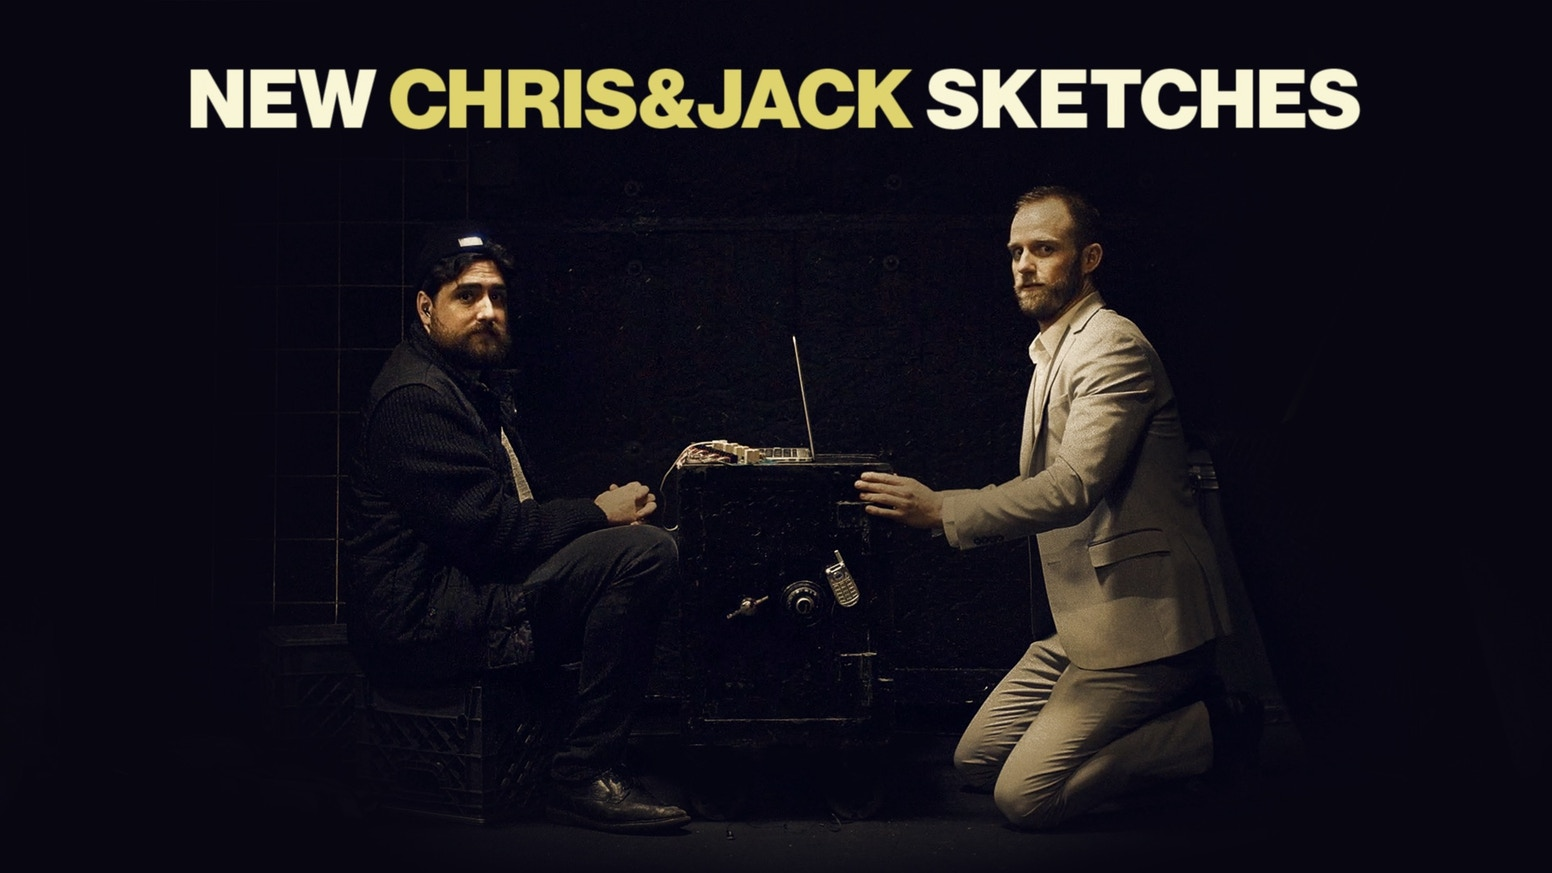 Fund a block of 6 brand new Chris and Jack sketches for Youtube.